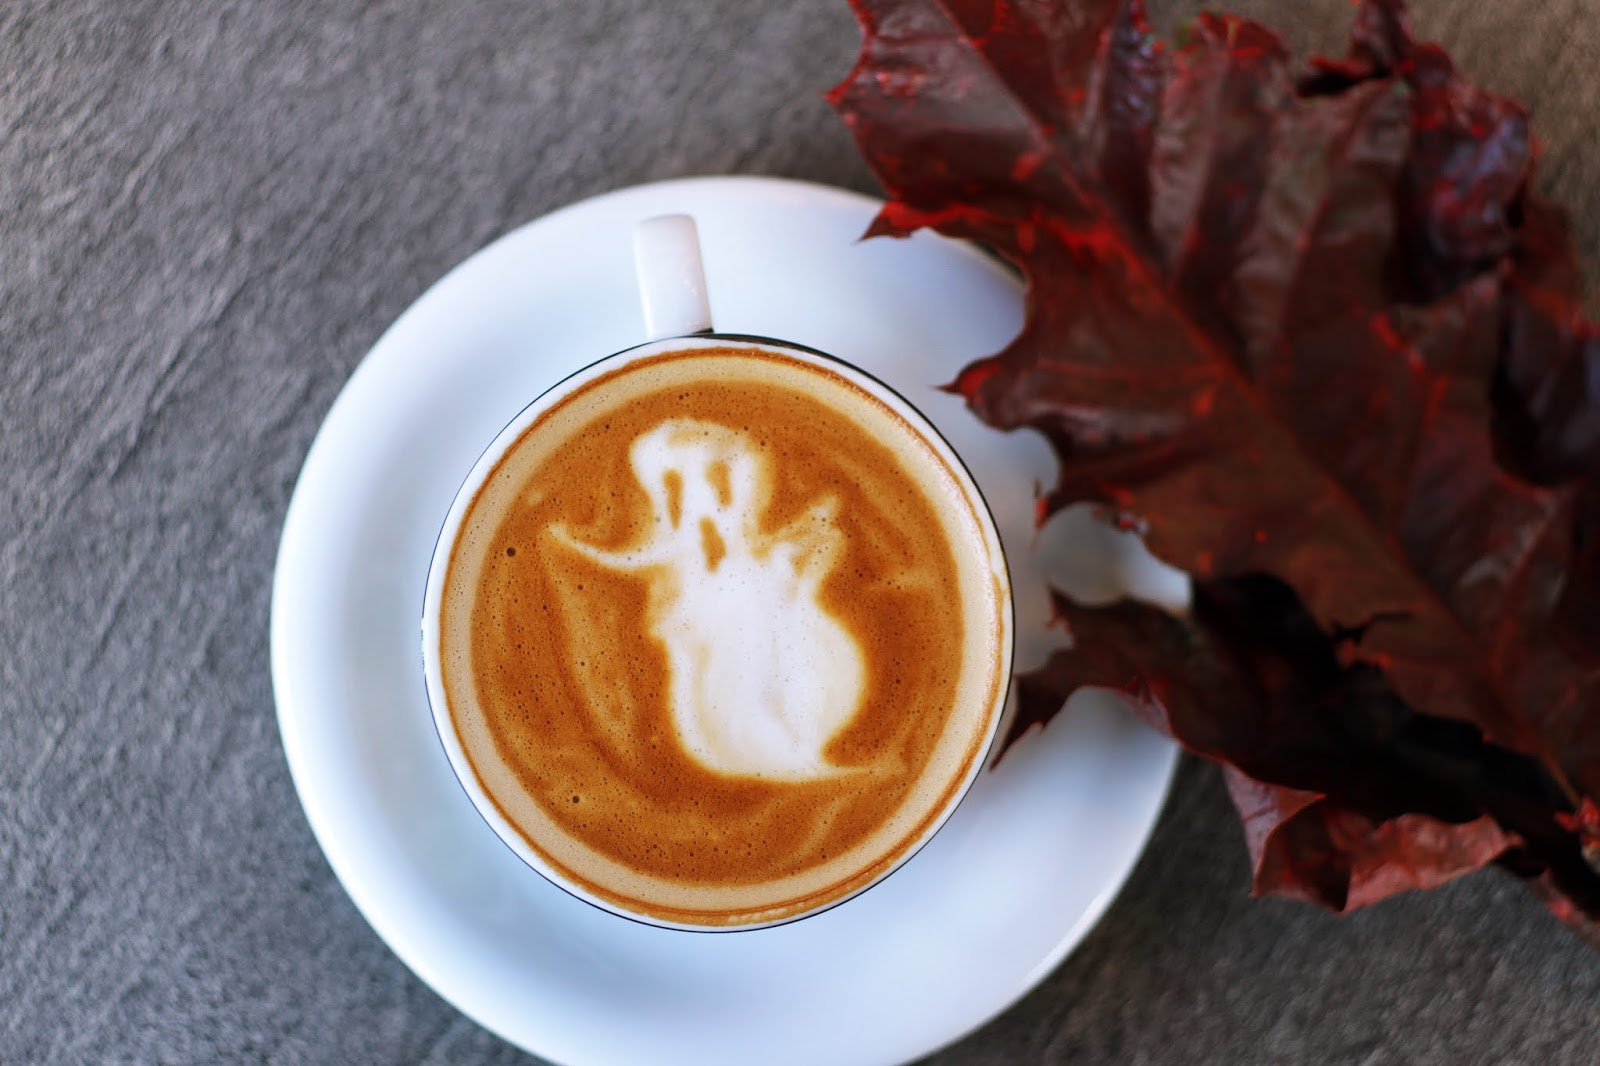 Latte art of a Halloween ghost